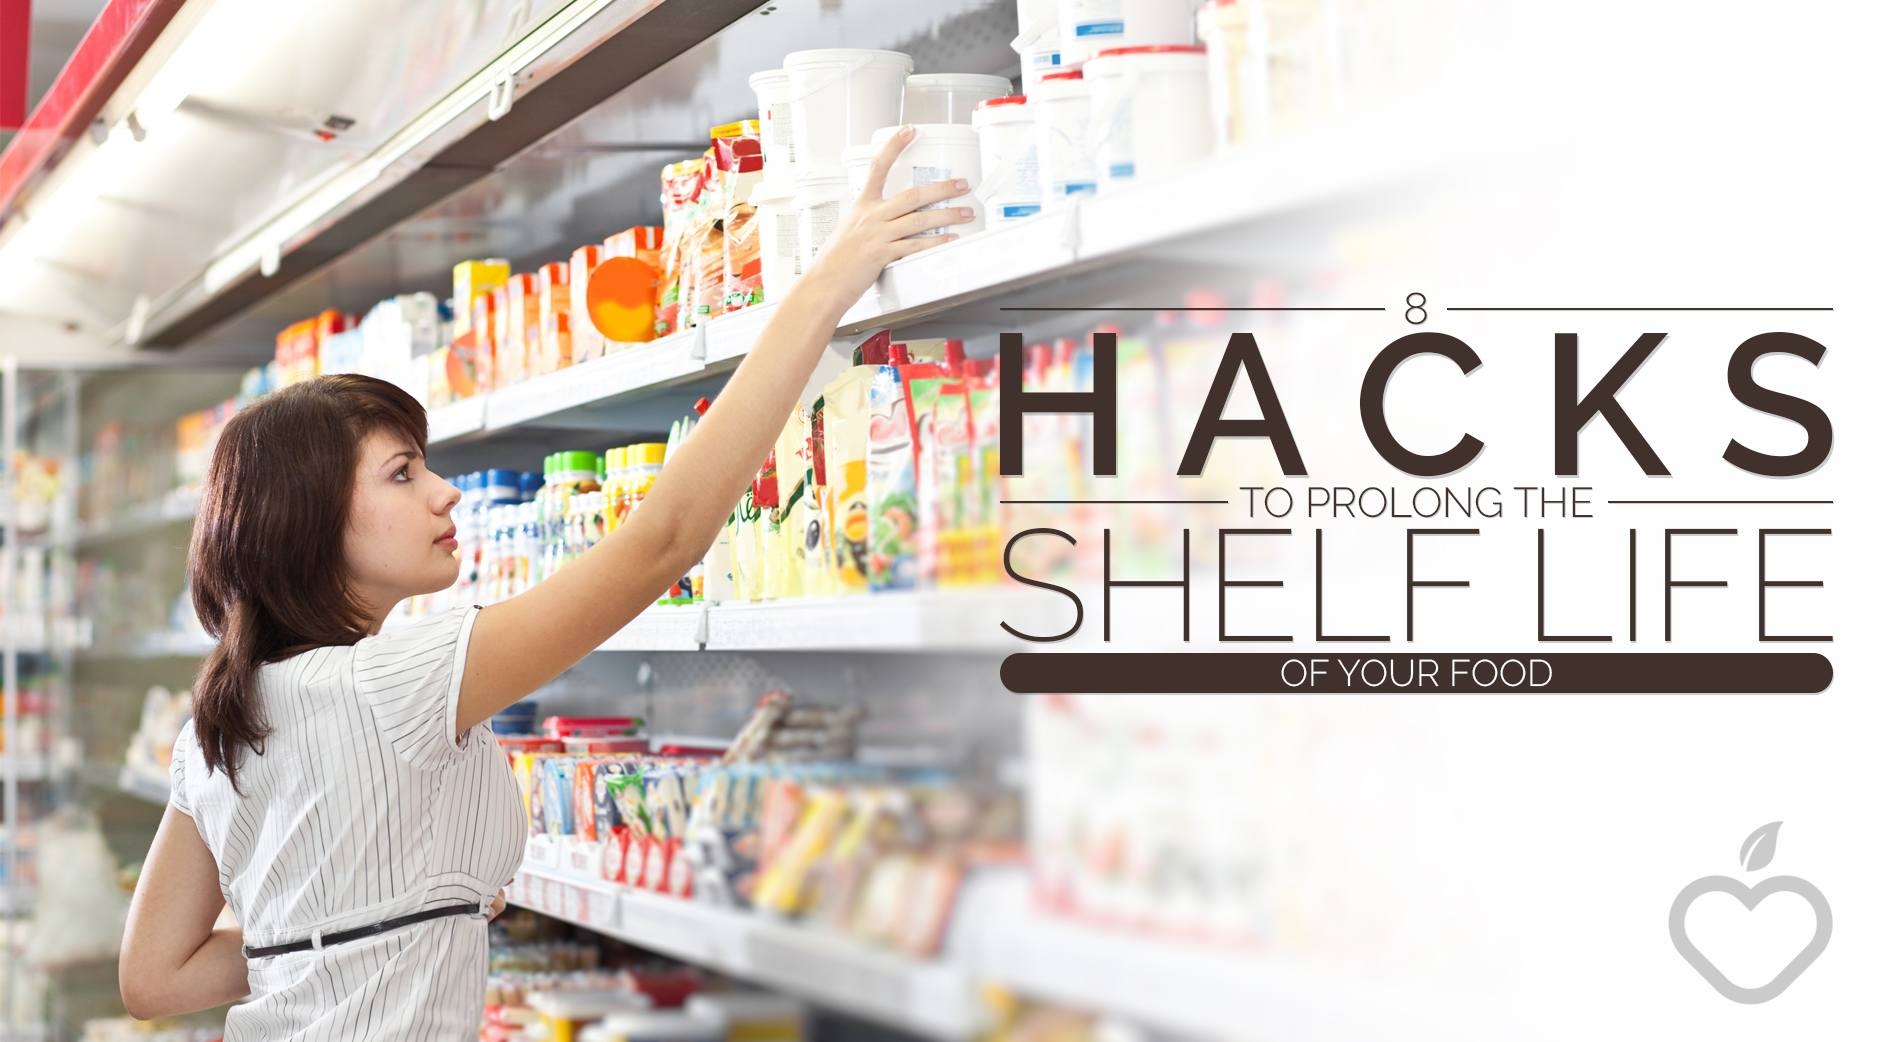 Hacks Image Design 1 - 8 Hacks To Prolong The Shelf Life Of Your Food